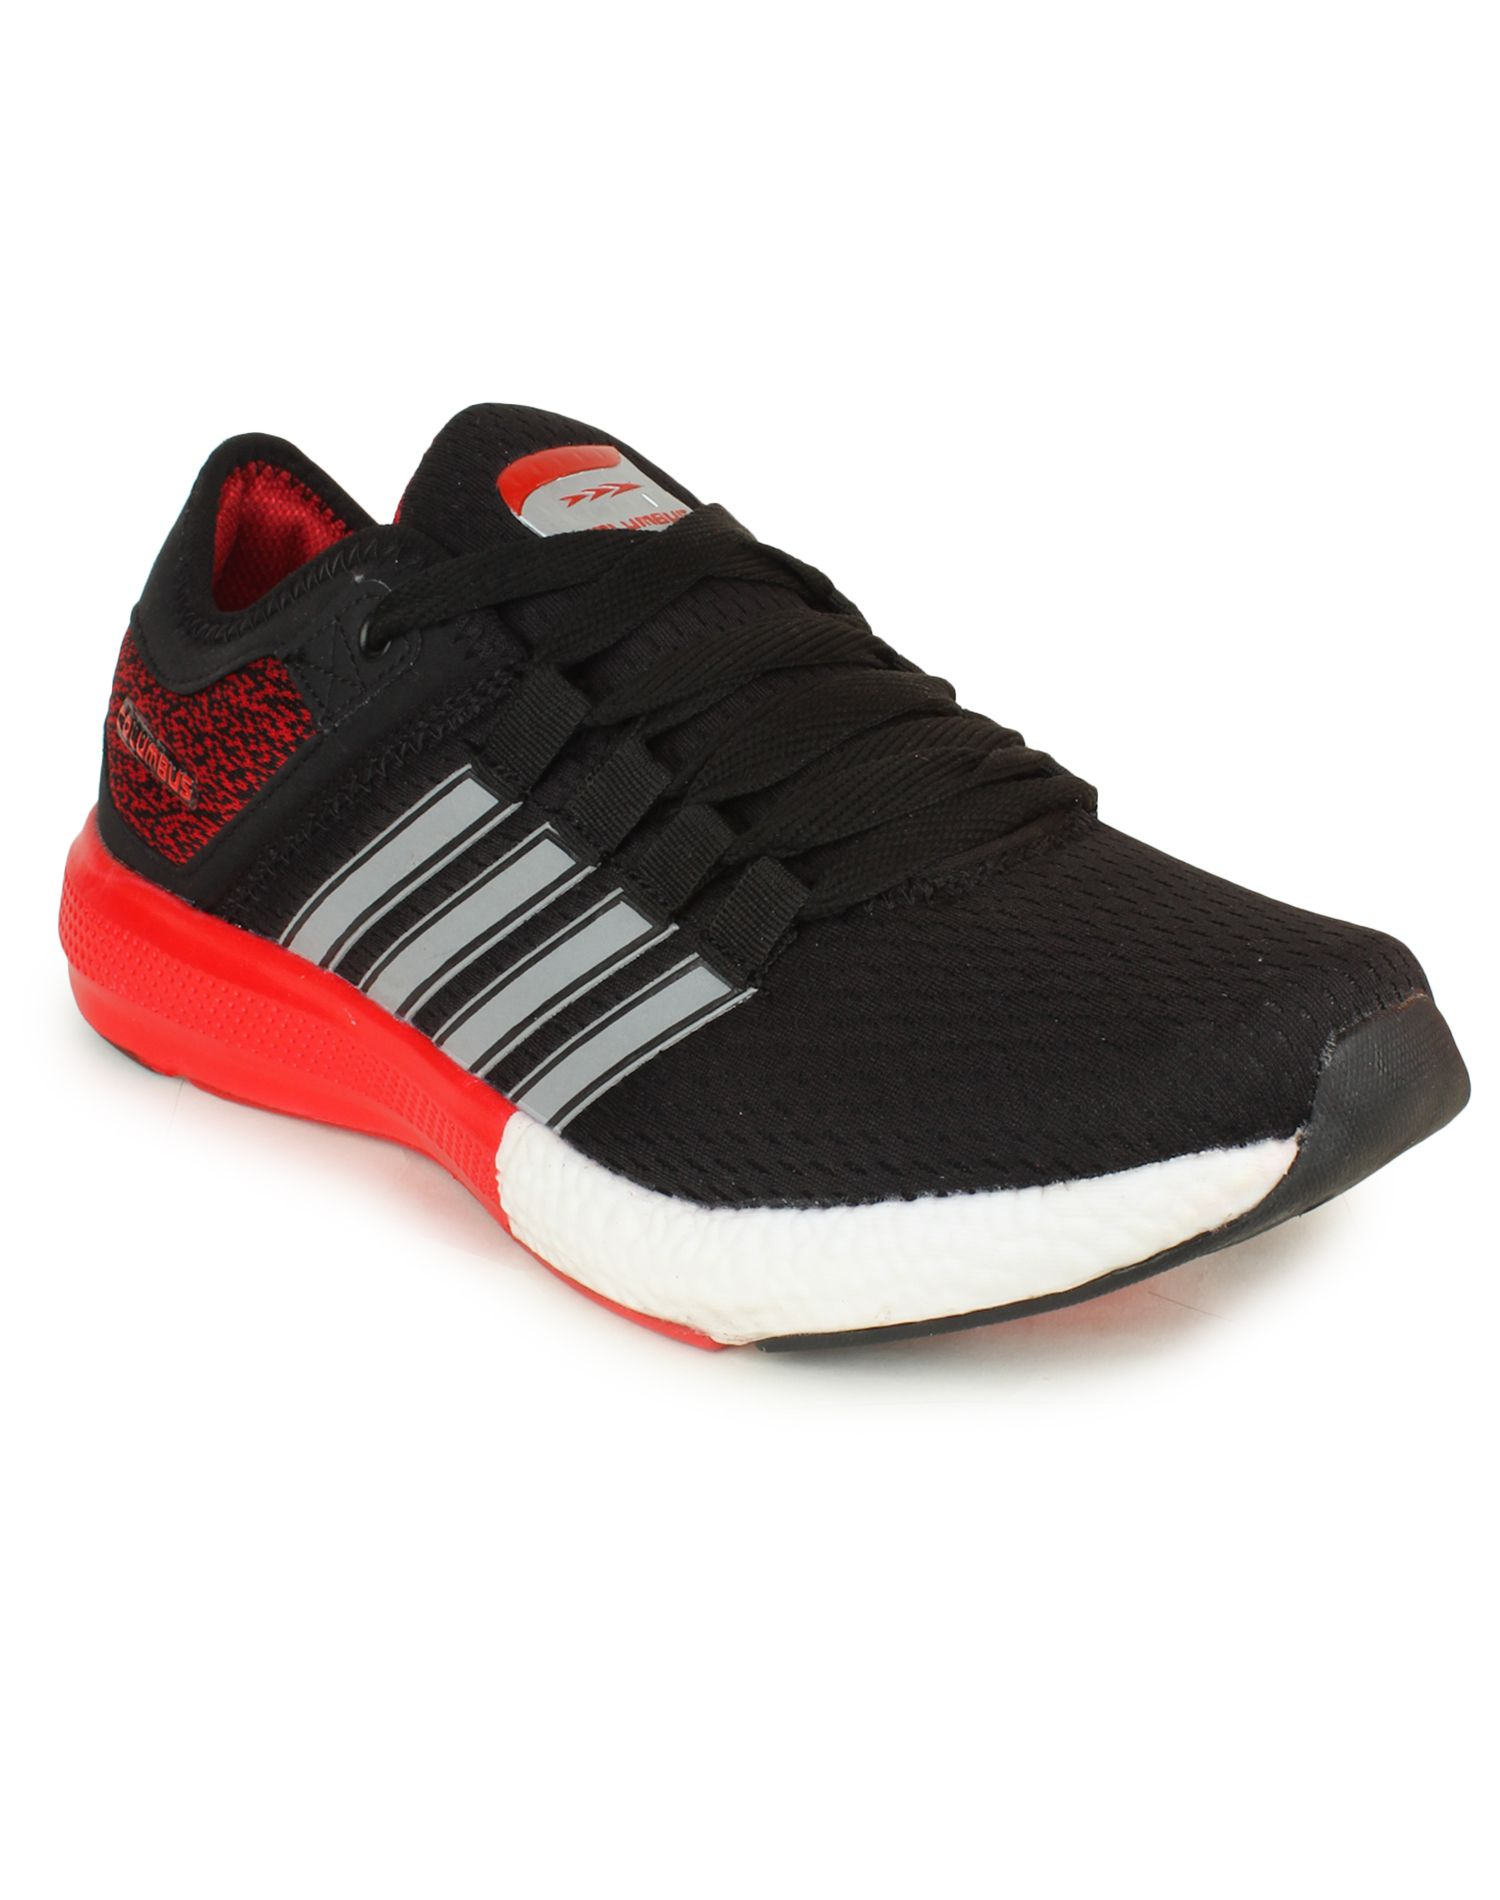 6283bbe47e28 Columbus Columbus-Revital-3 Red Running Shoes - Buy Columbus  Columbus-Revital-3 Red Running Shoes Online at Best Prices in India on  Snapdeal